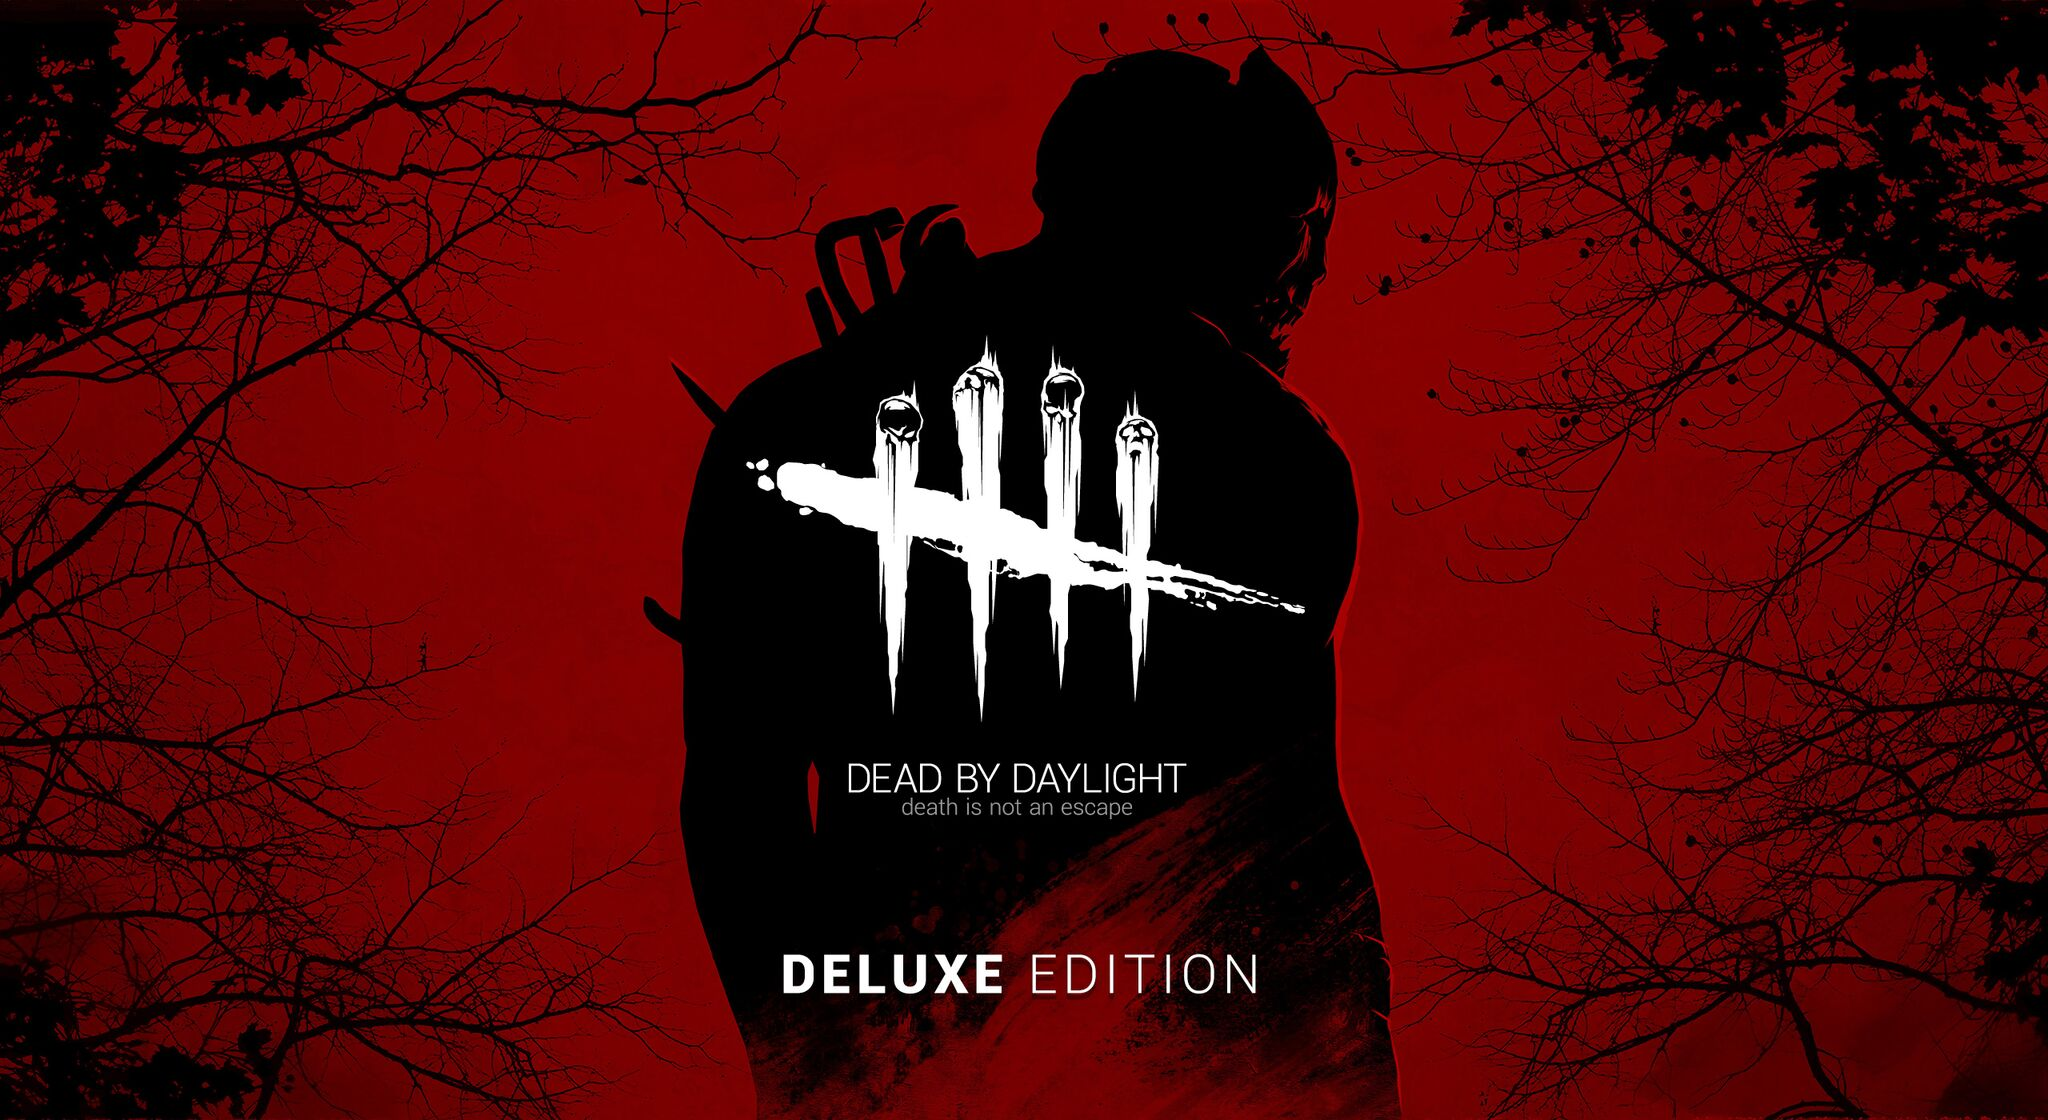 Dbd dedicated servers release date f